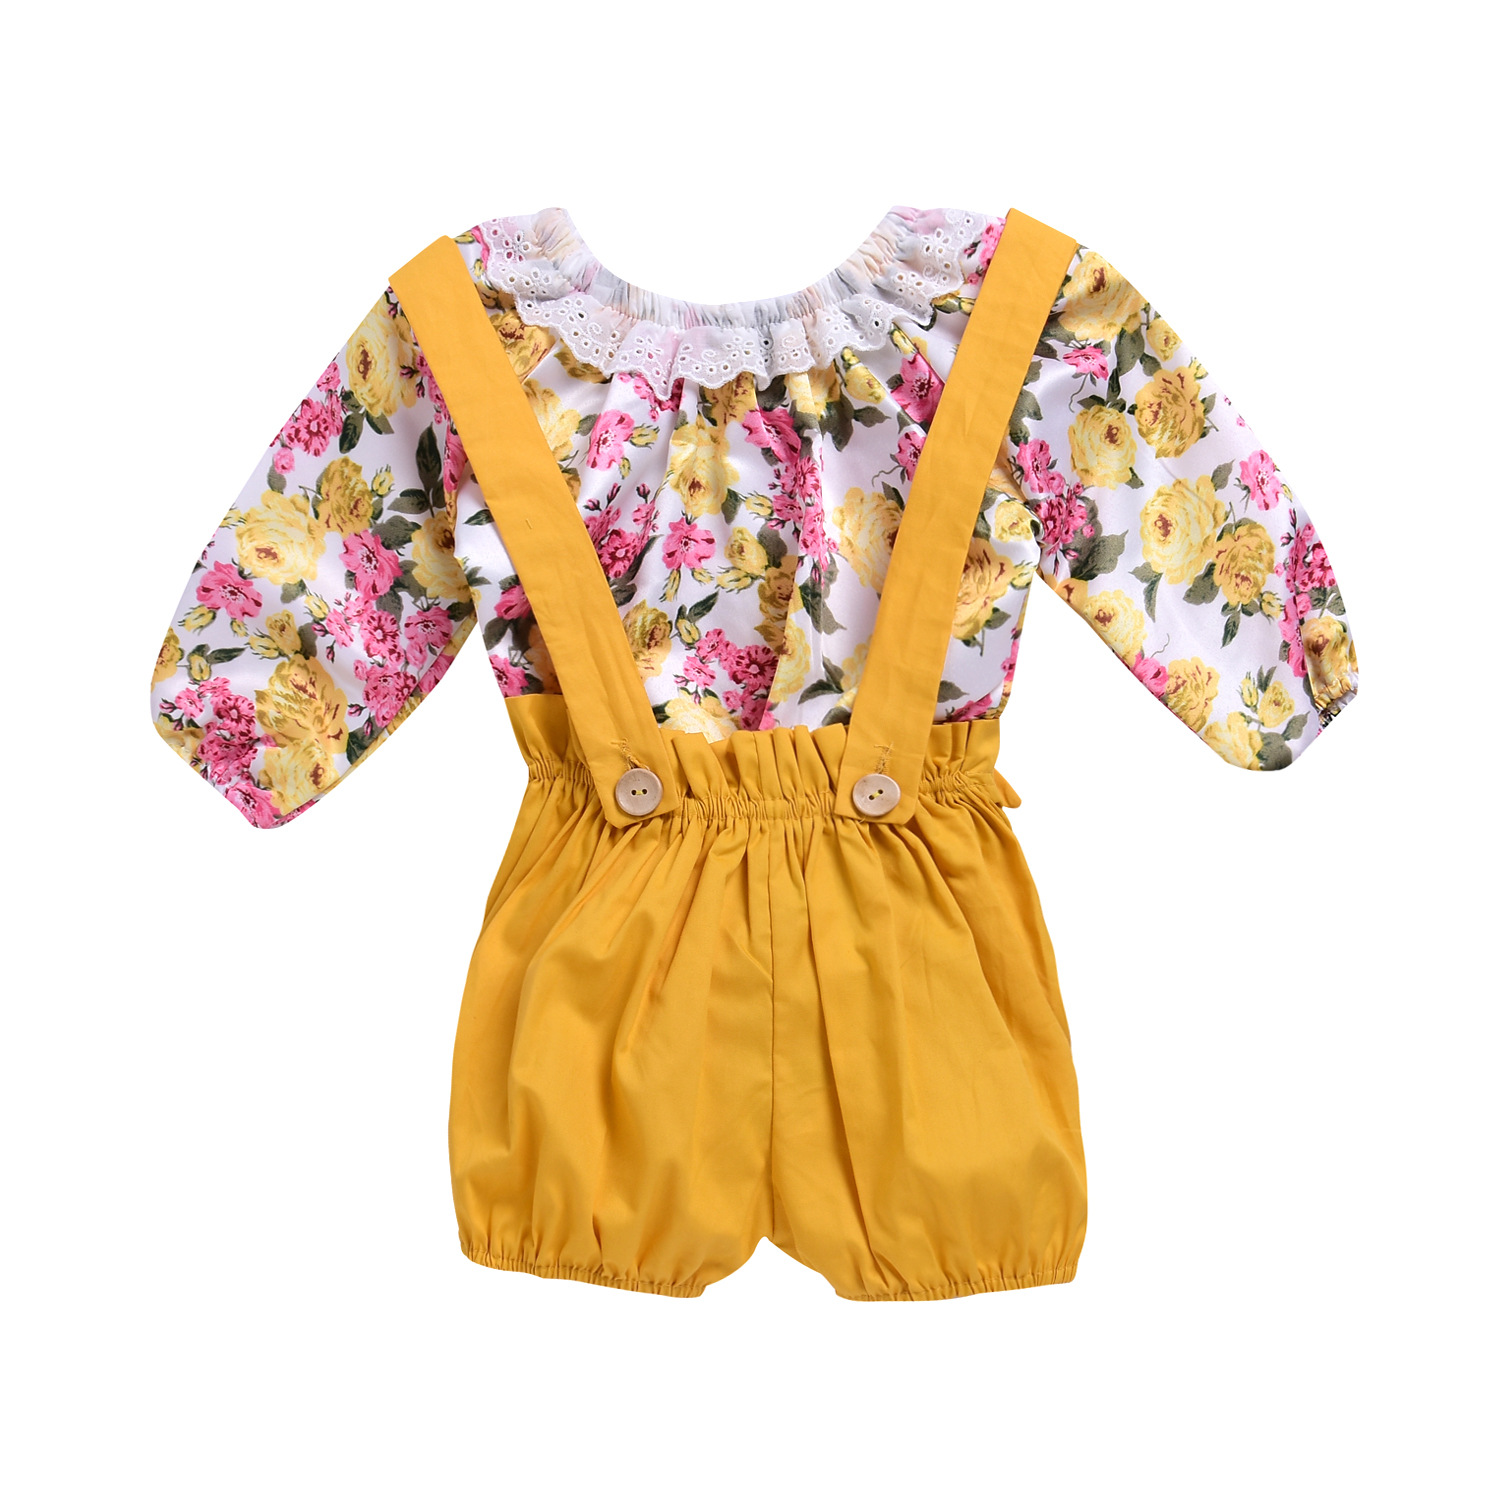 Kids Baby Girls Floral Bodysuit Tops Yellow Suspender Overall Outfits Toddler 2018 Summer Headband Outfits 2Pcs Set Clothes 1-5Y